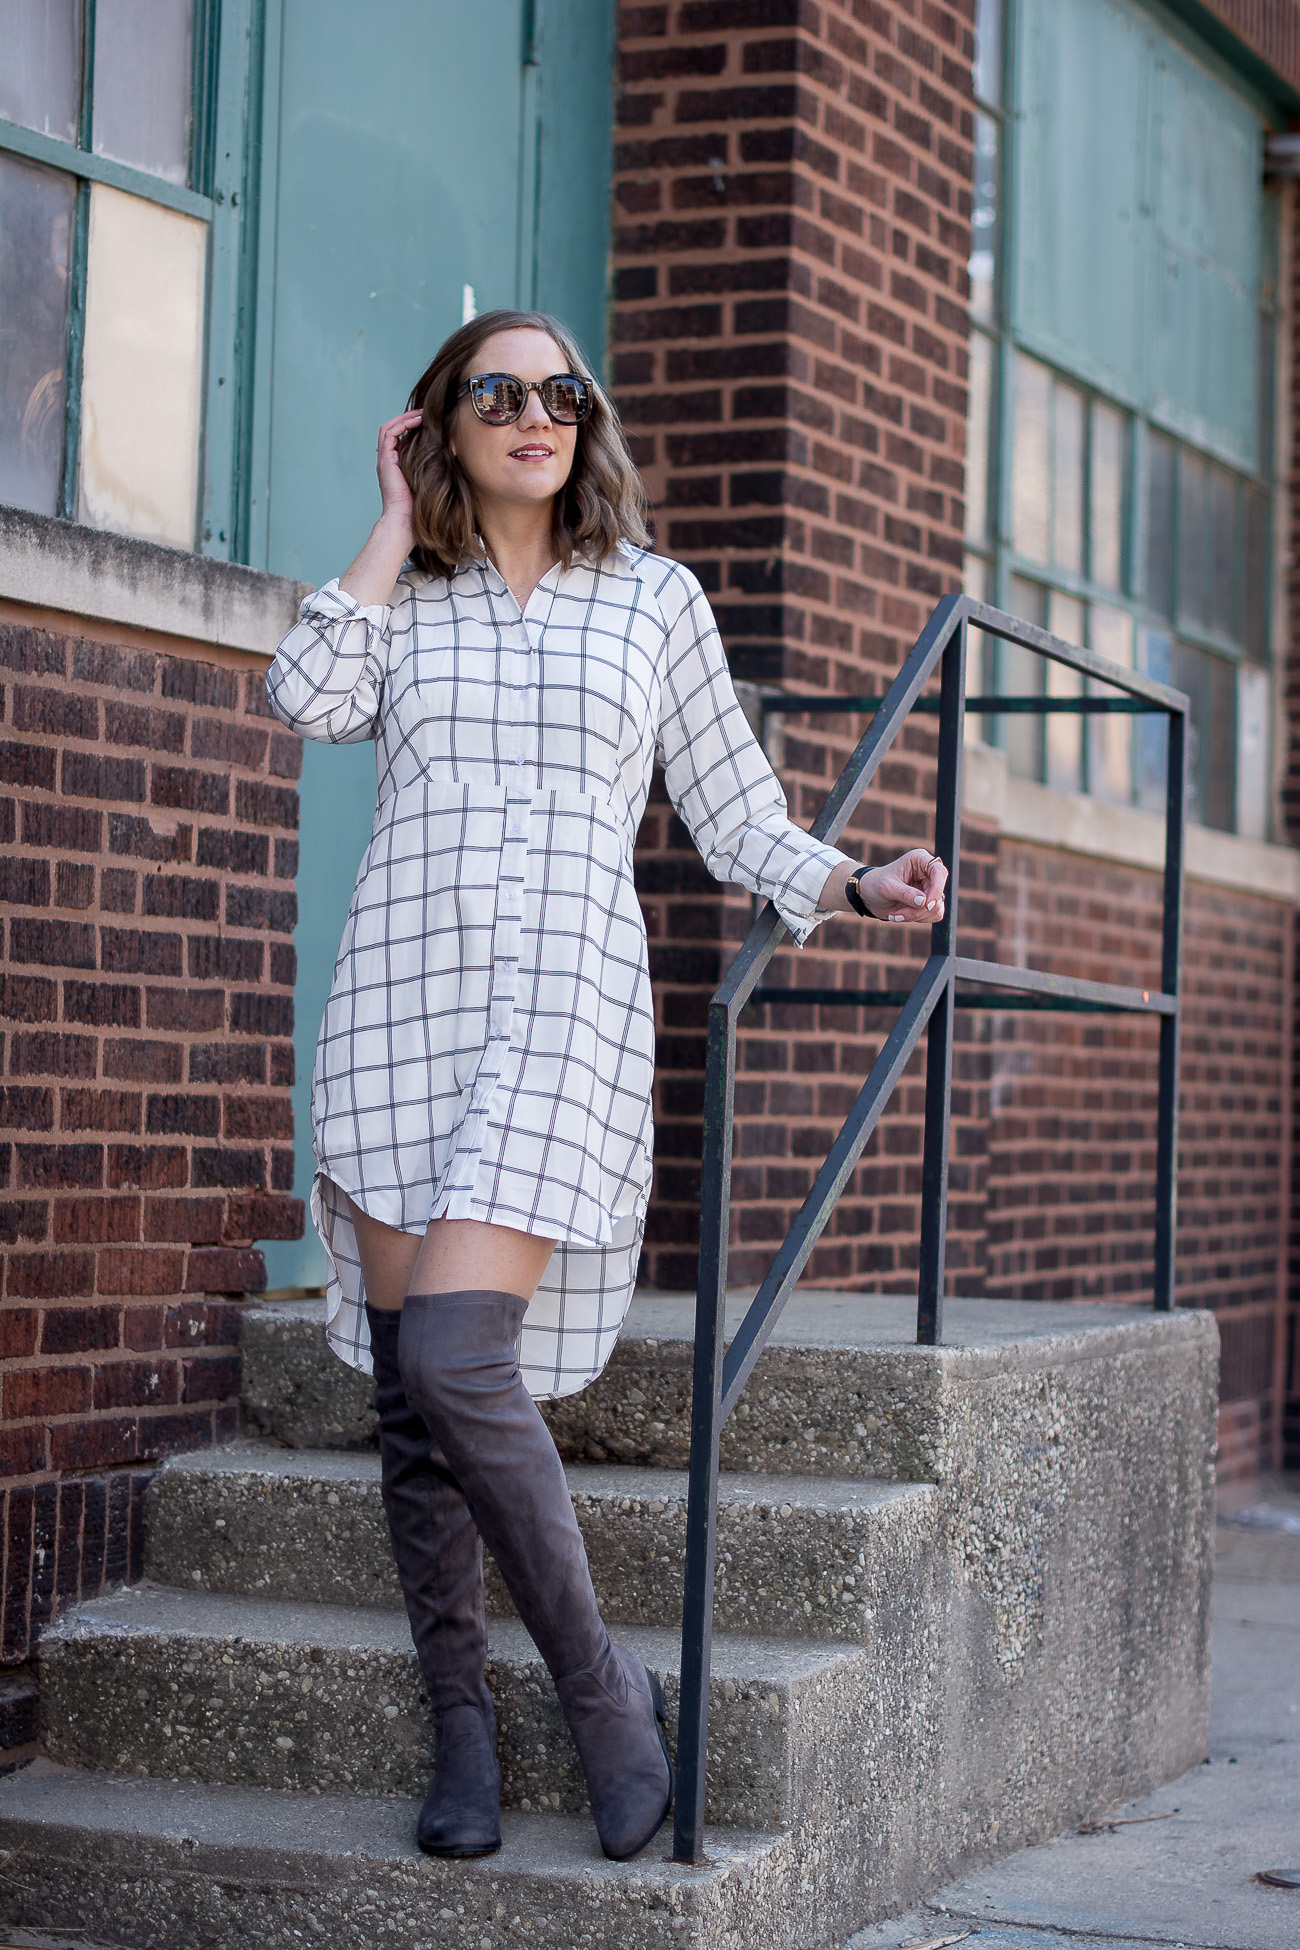 black-and-white-grid-print-shirtdress-gray-over-the-knee-boots-delicate-jewelry